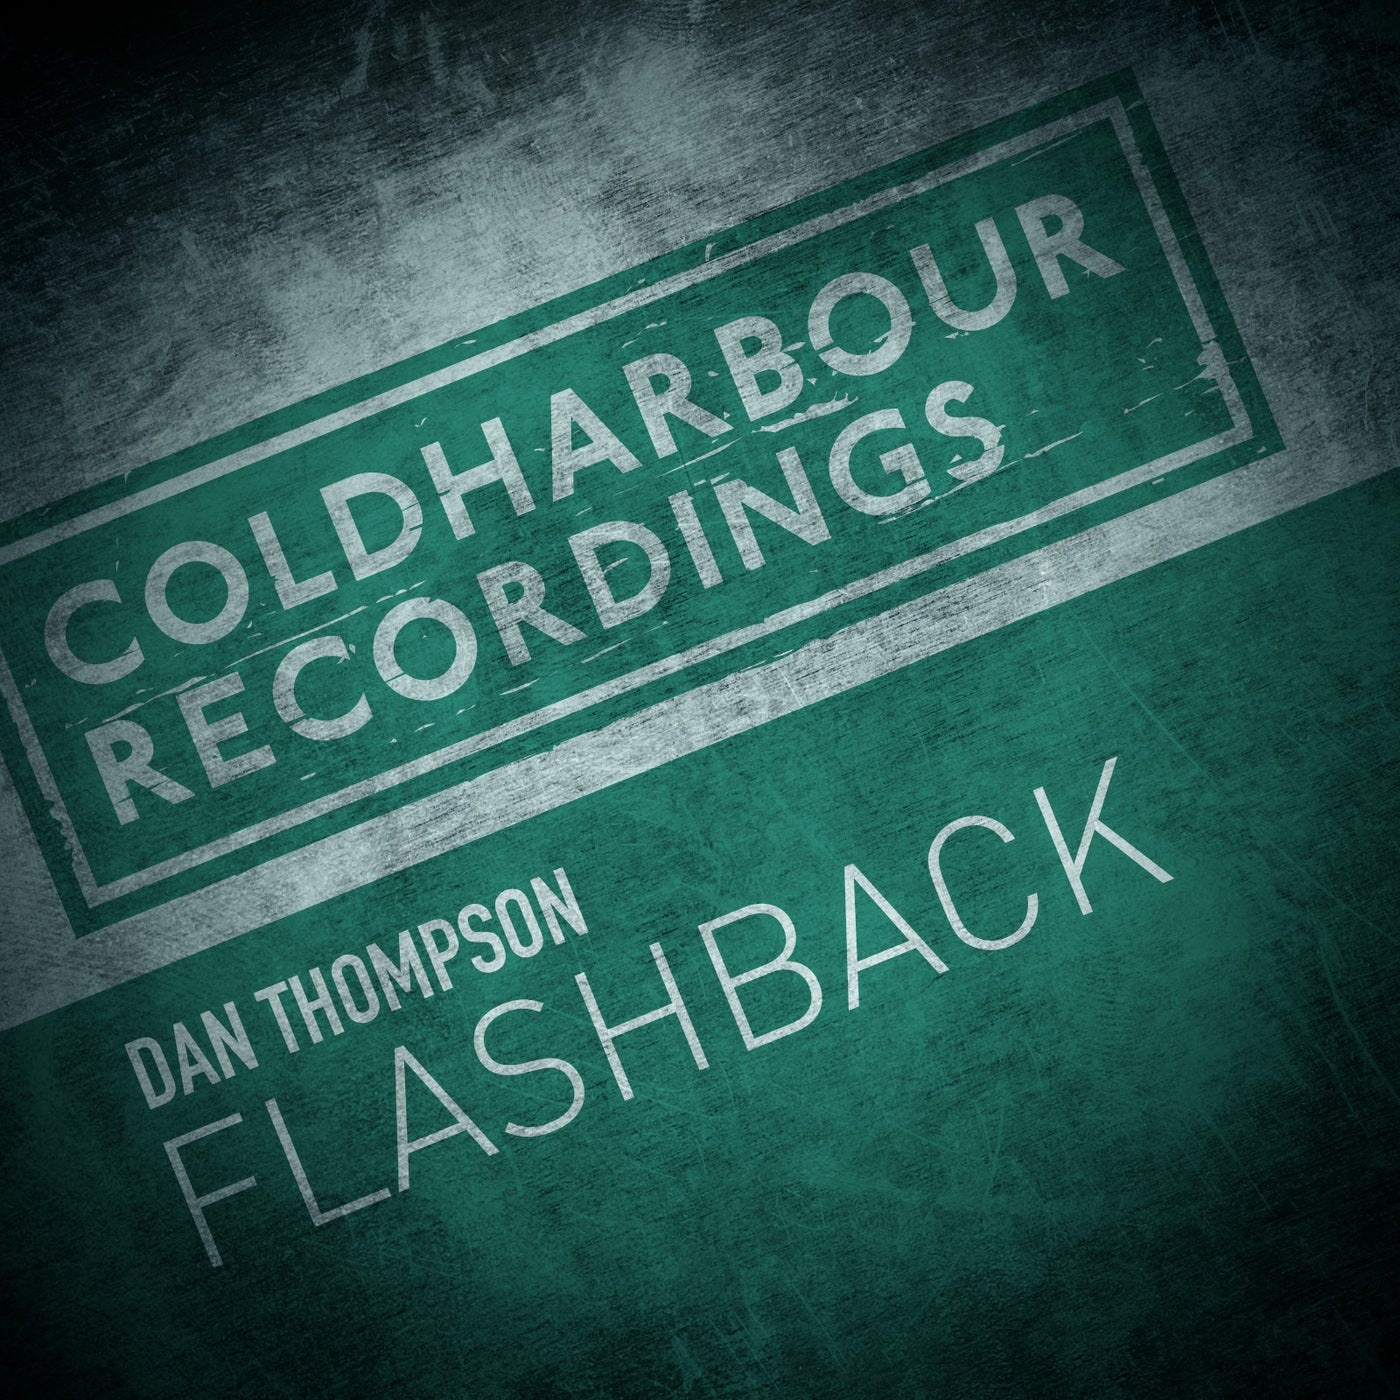 Cover - Dan Thompson - Flashback (Extended Mix)